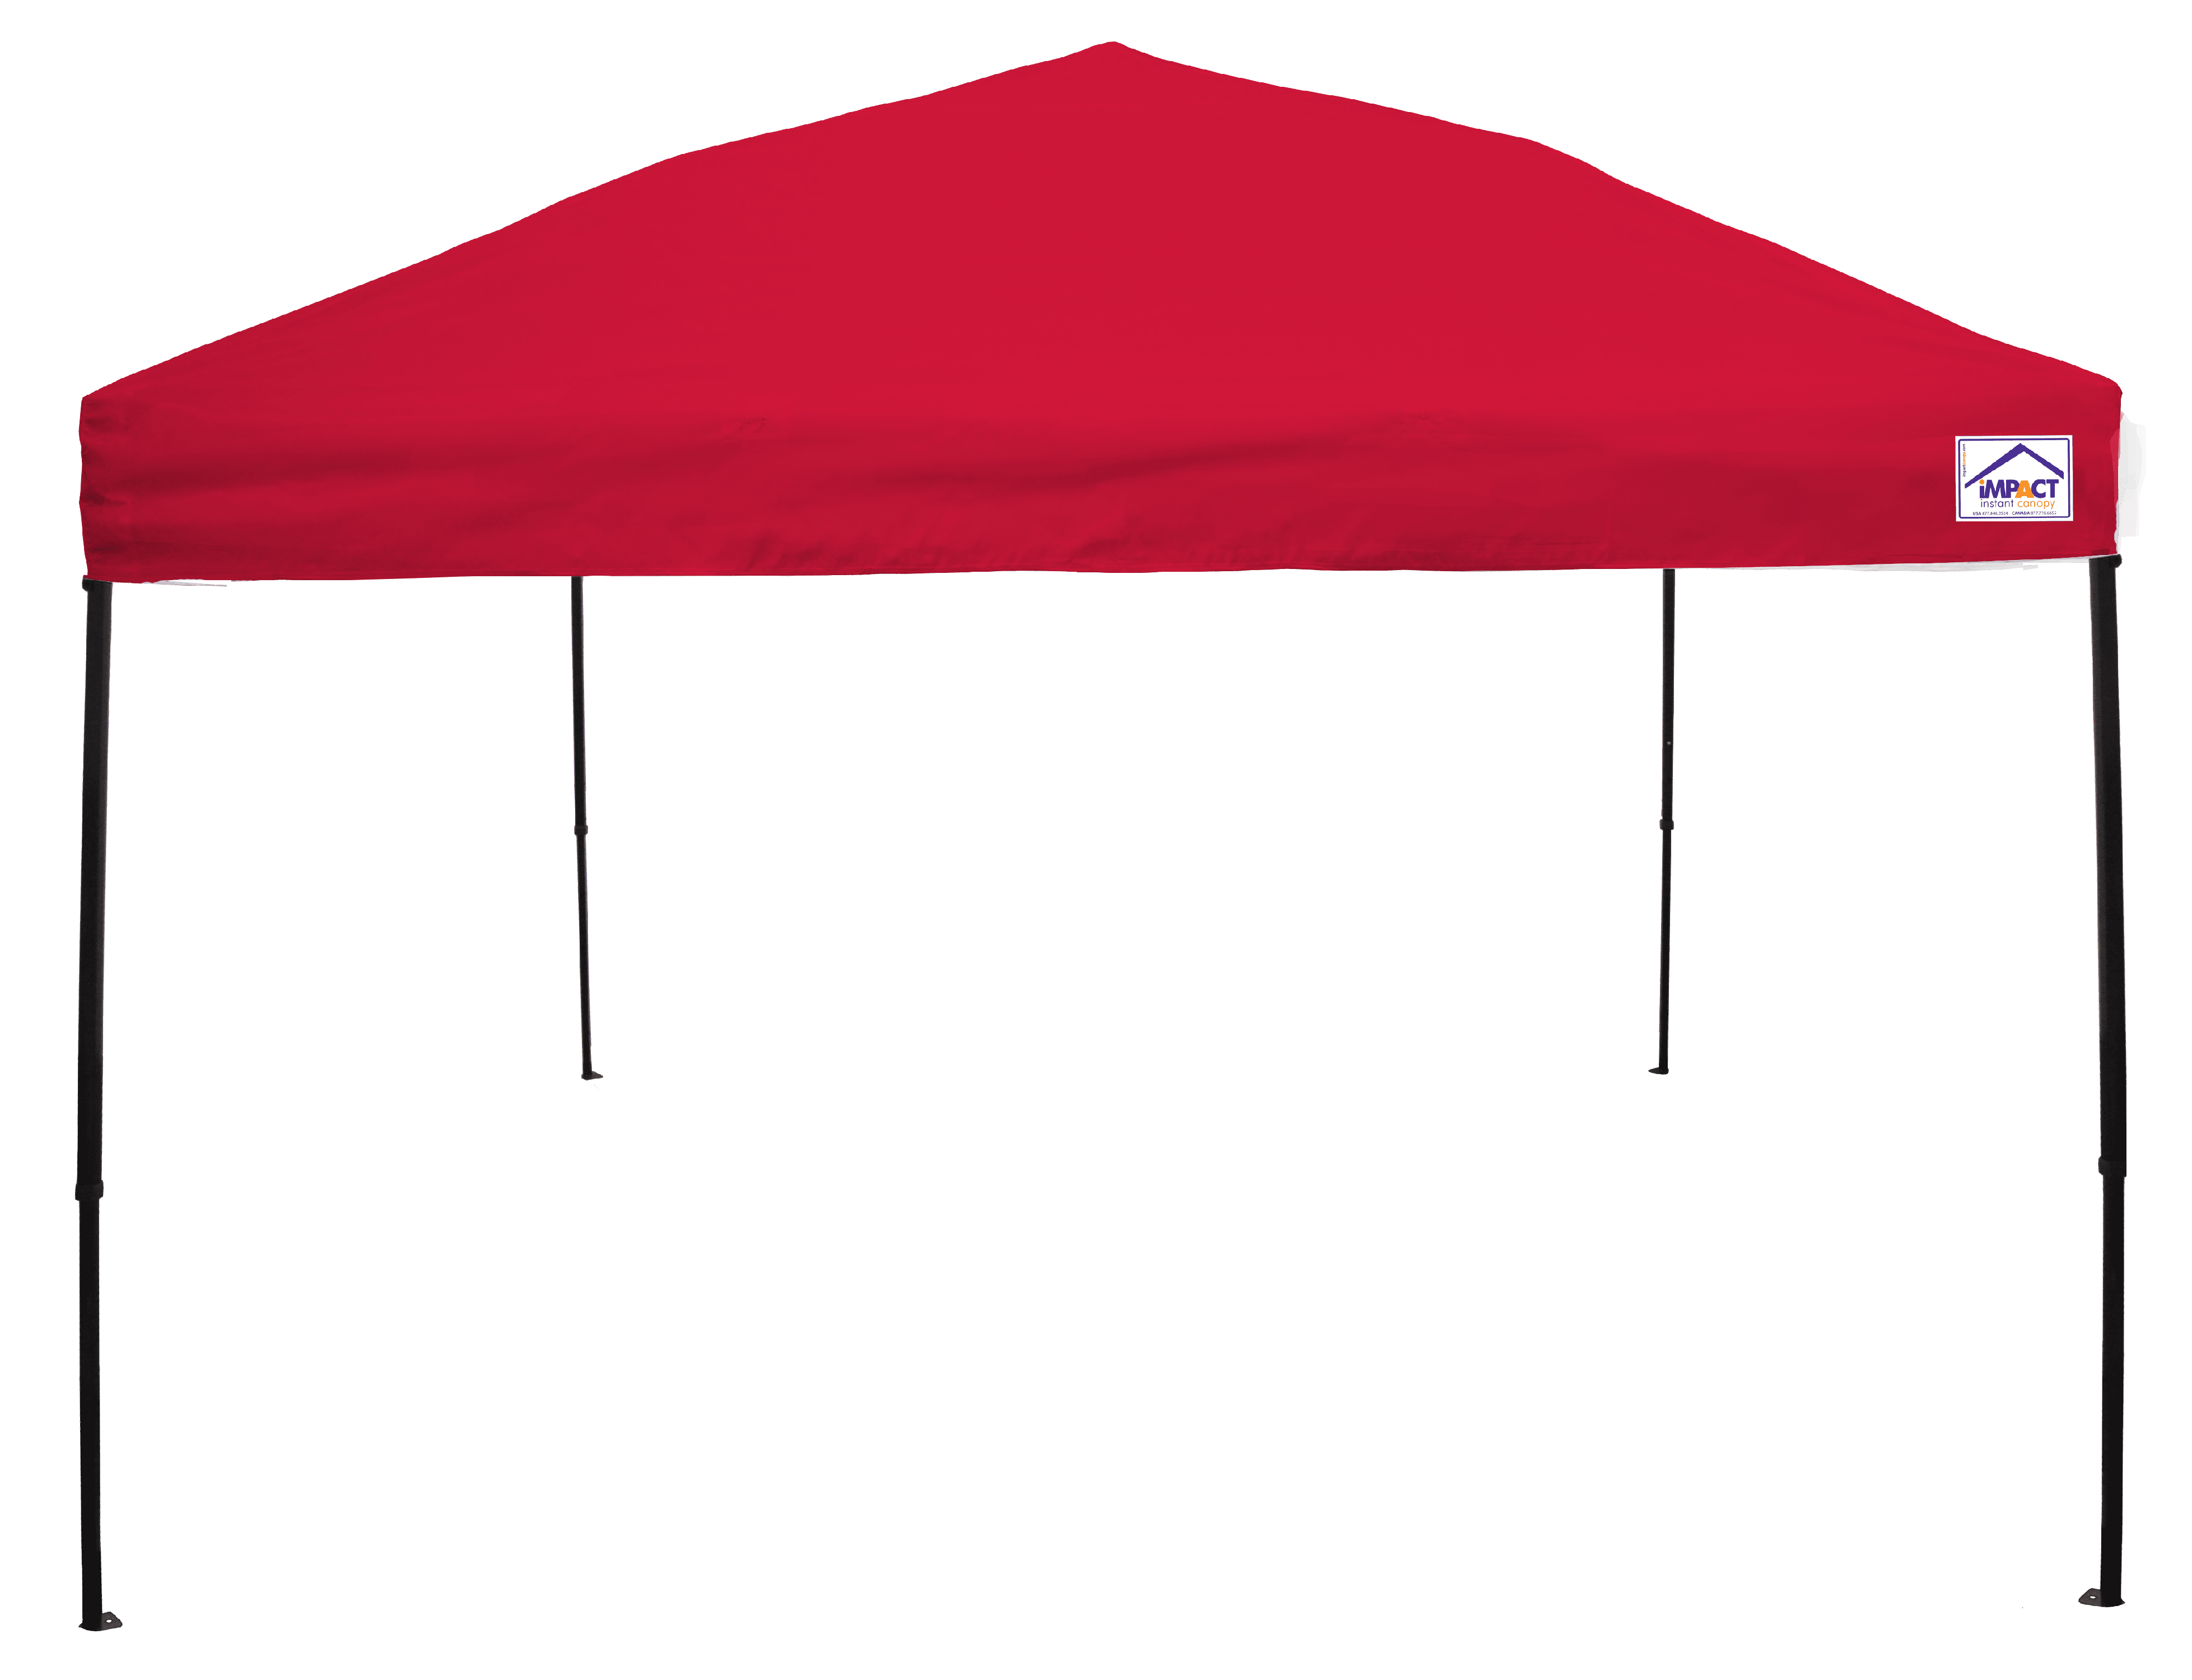 Head Way Gazebo Top Red 10 x 10 Instant Pop Up Canopy Tent by Impact Canopy